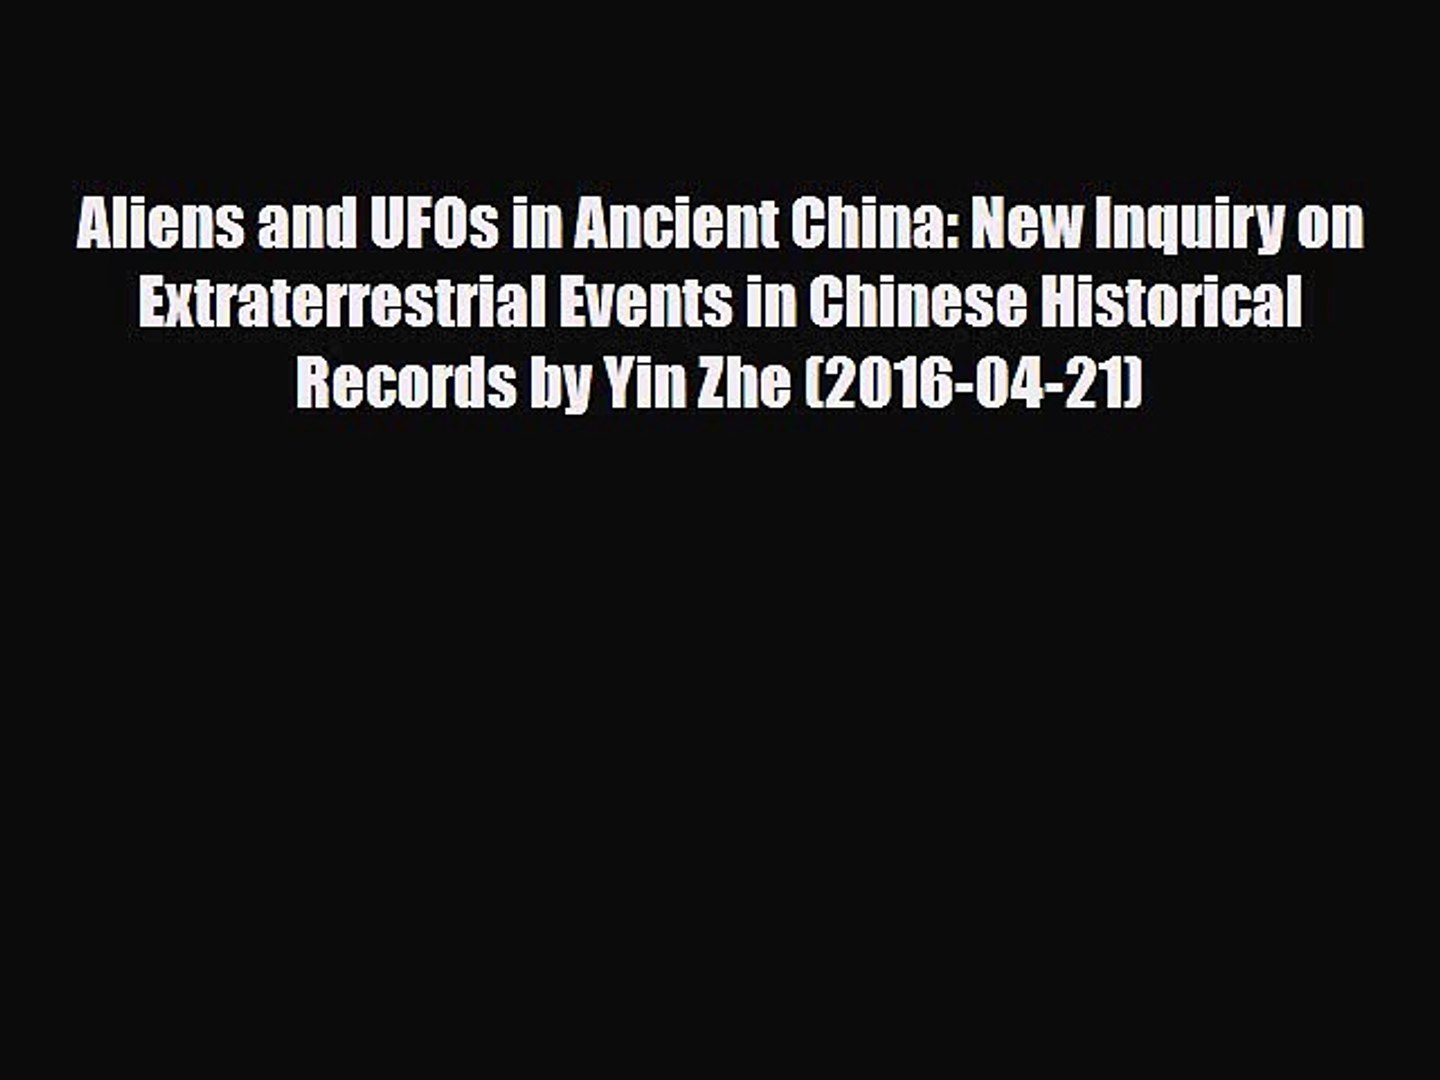 Aliens and UFOs in Ancient China New Inquiry on Extraterrestrial Events in Chinese Historical Records